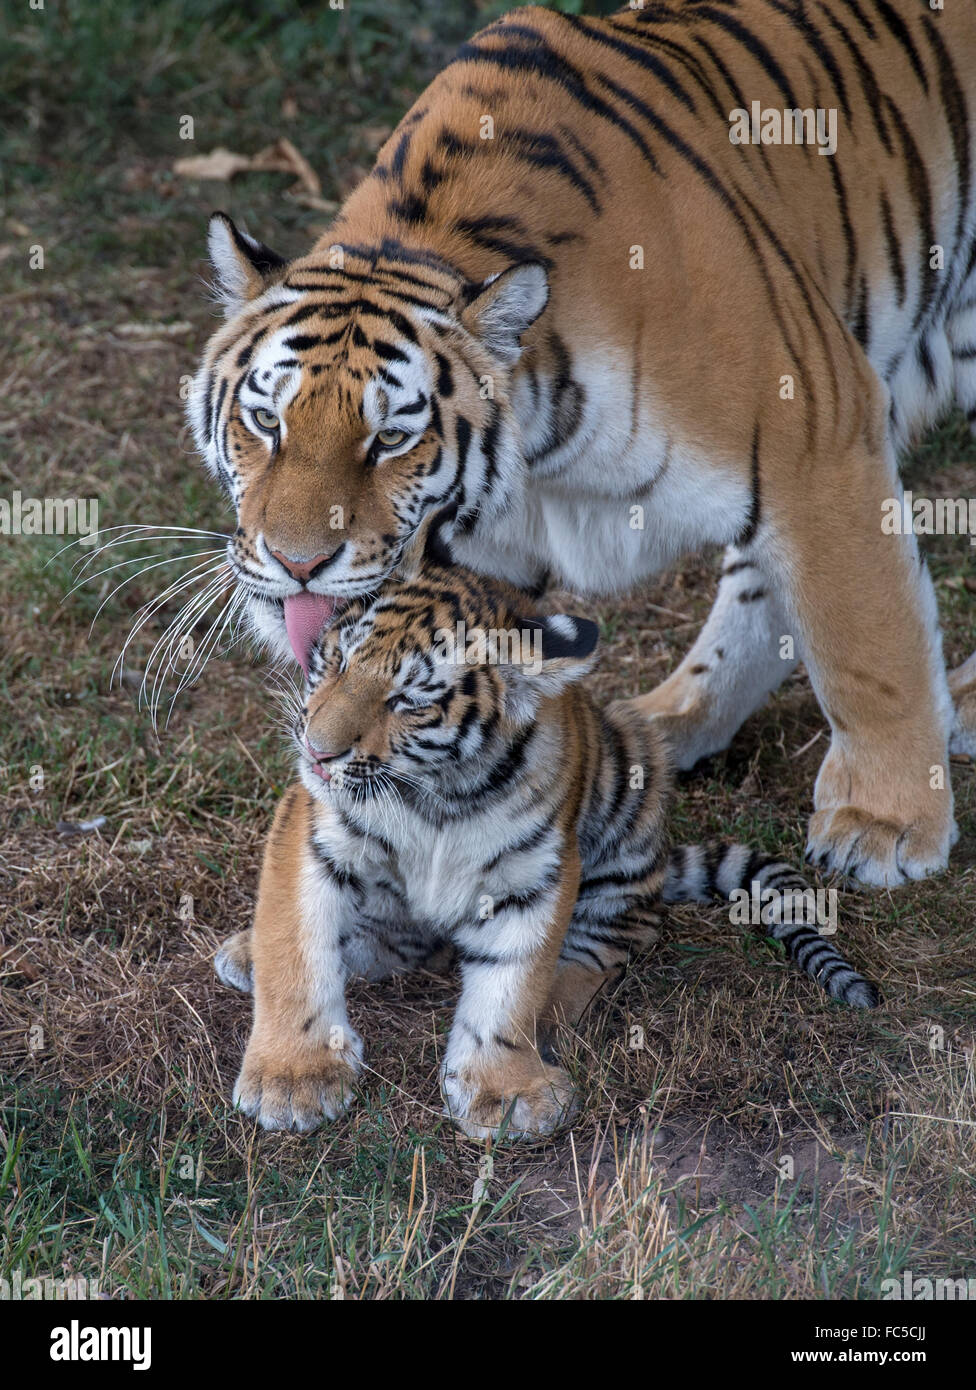 Amur (Siberian) tiger washing her young son - Stock Image